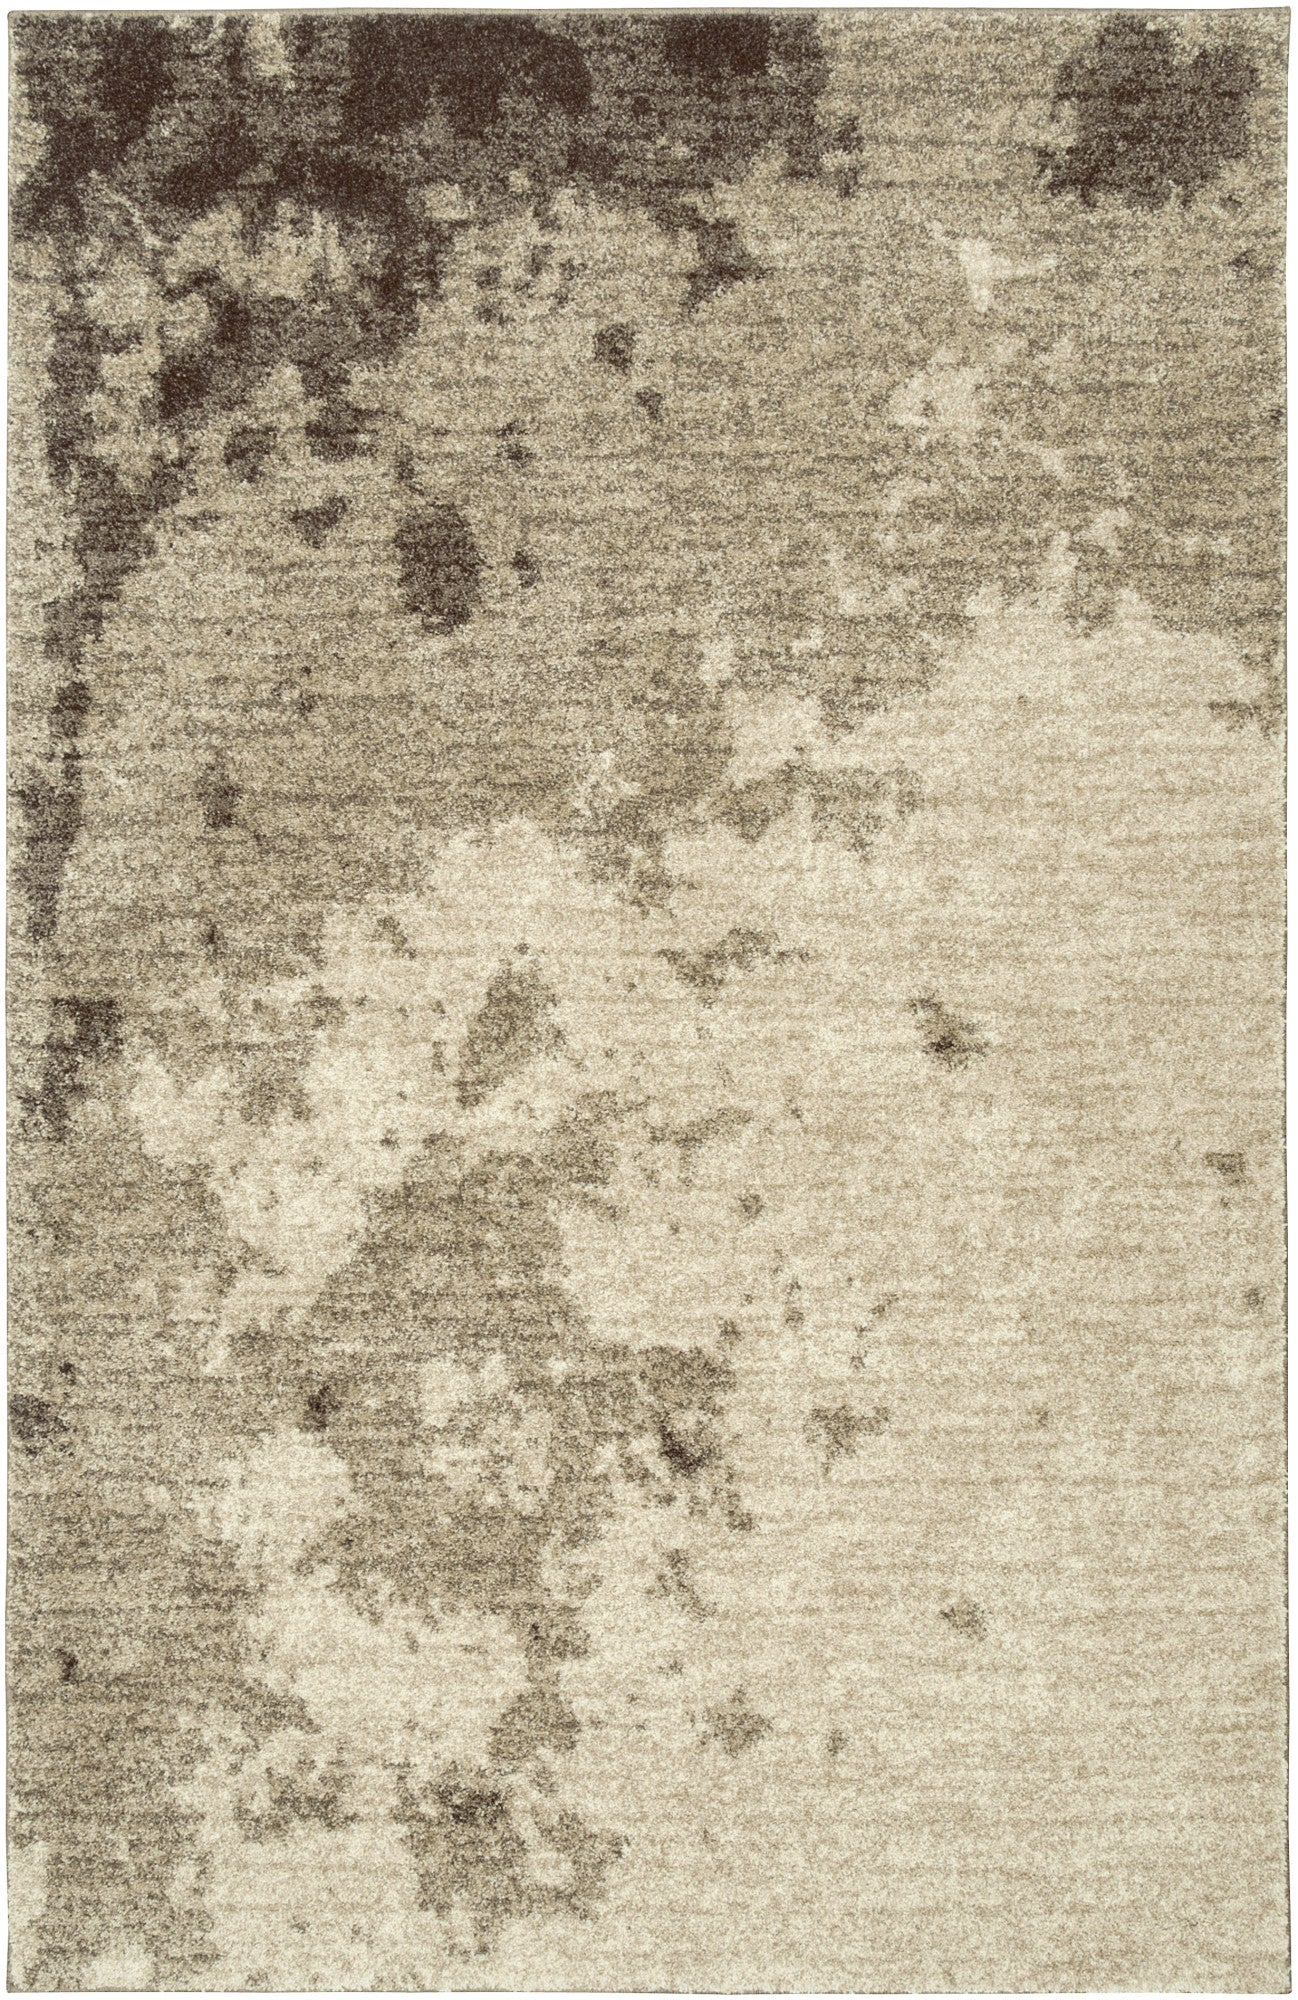 LR Resources Rock 80921 Beige Area Rug